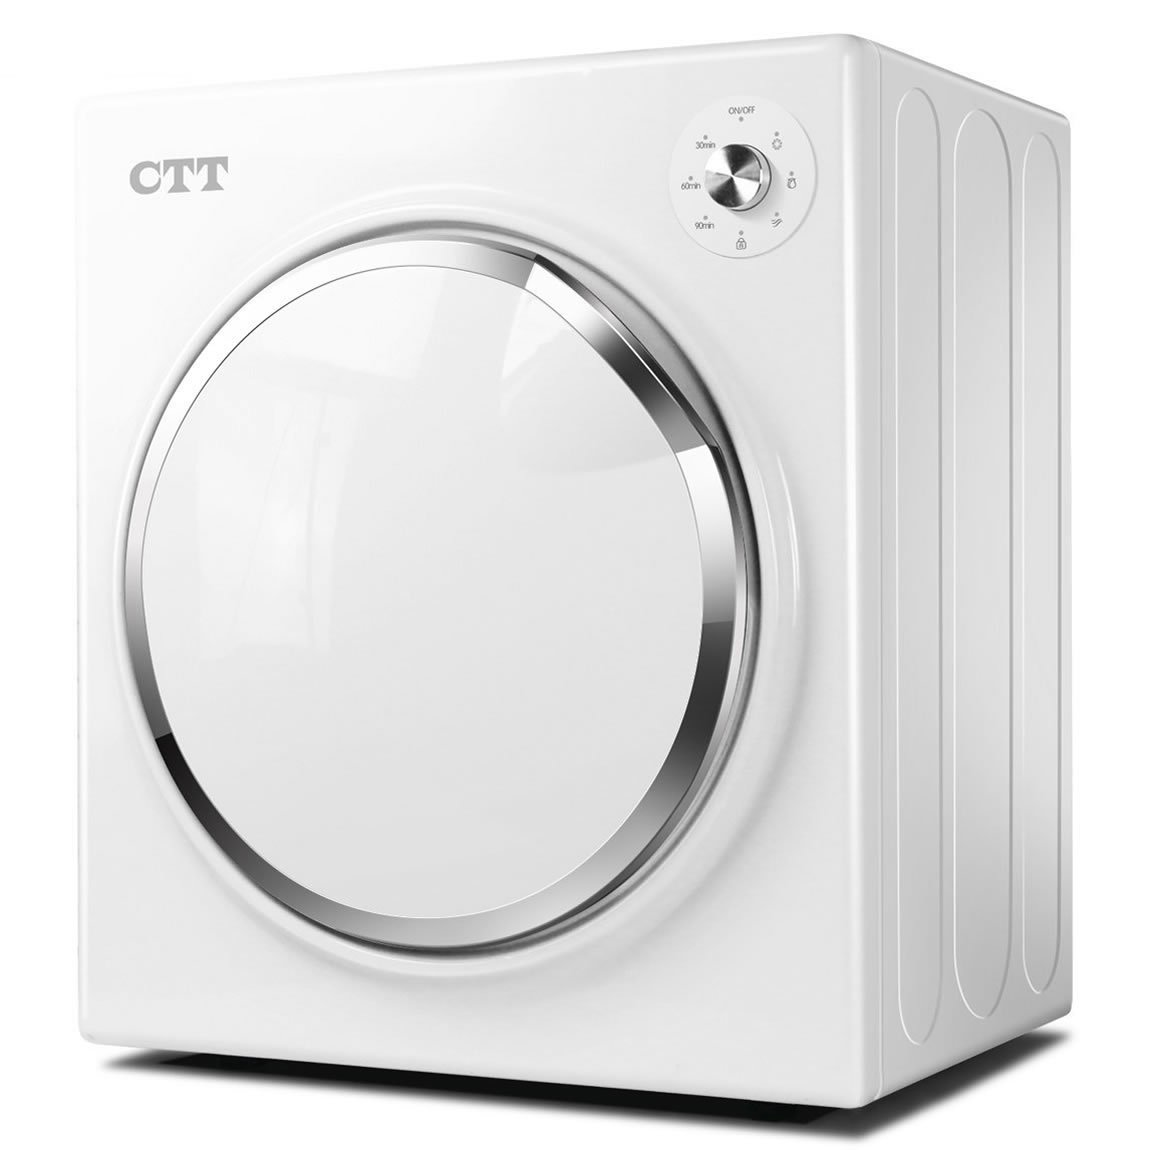 CTT 13 lb. Capacity/3.25 Cu.Ft. Intelligent Compact Protable Tumble Clothes Dryer w/Timer Control, Electric Tumble Vented Laundry Dryer, Intelligent Drying Control Systerm, Humidity Tester MeiLaiLe